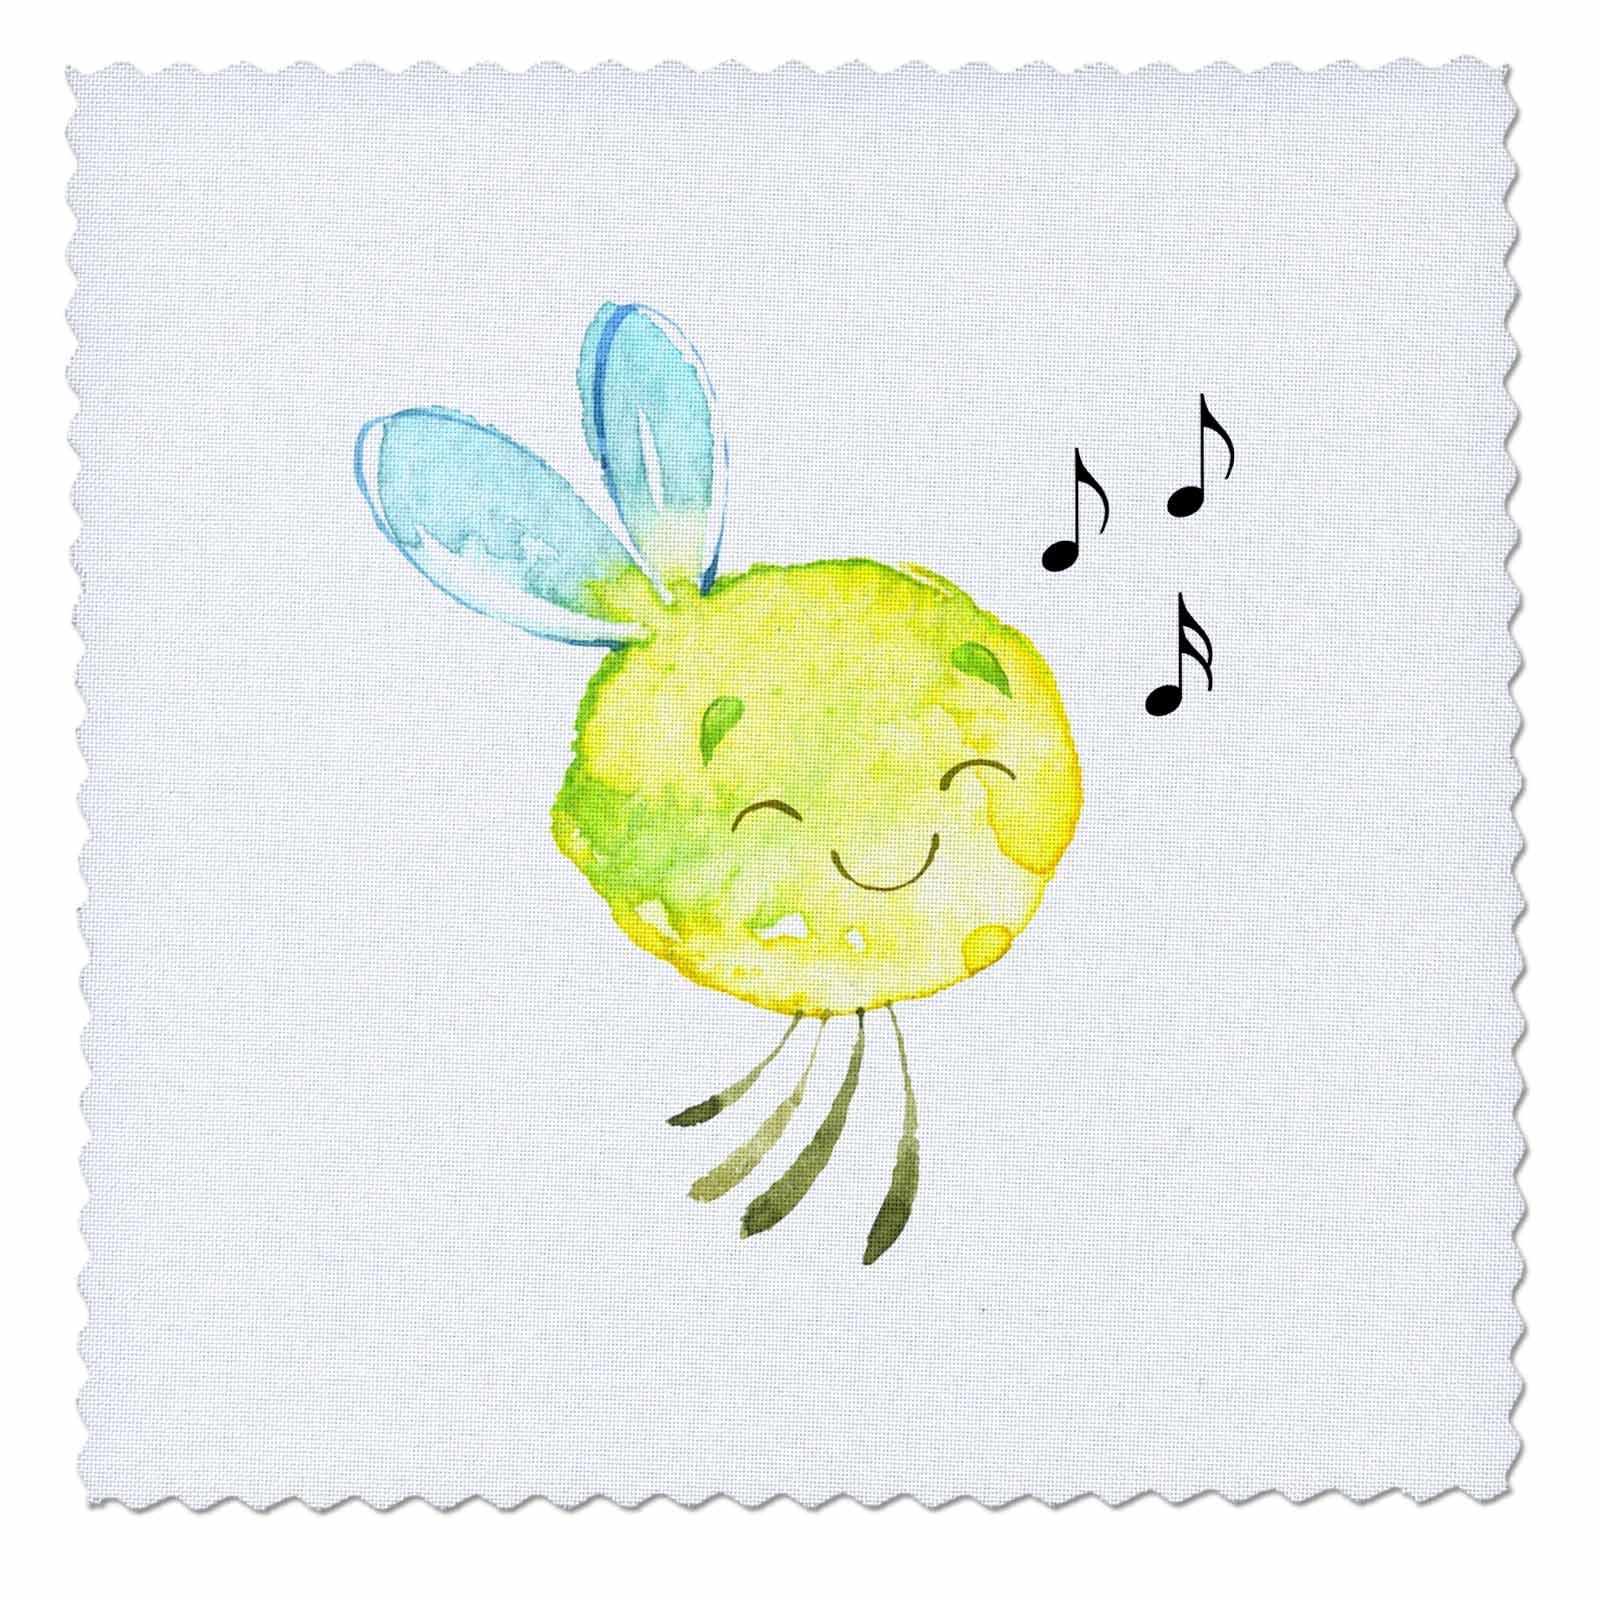 3dRose TNMGraphics Animals - Happy Singing Little Cartoon Circular Yellow Bug With Wings - 22x22 inch quilt square (qs_280631_9)